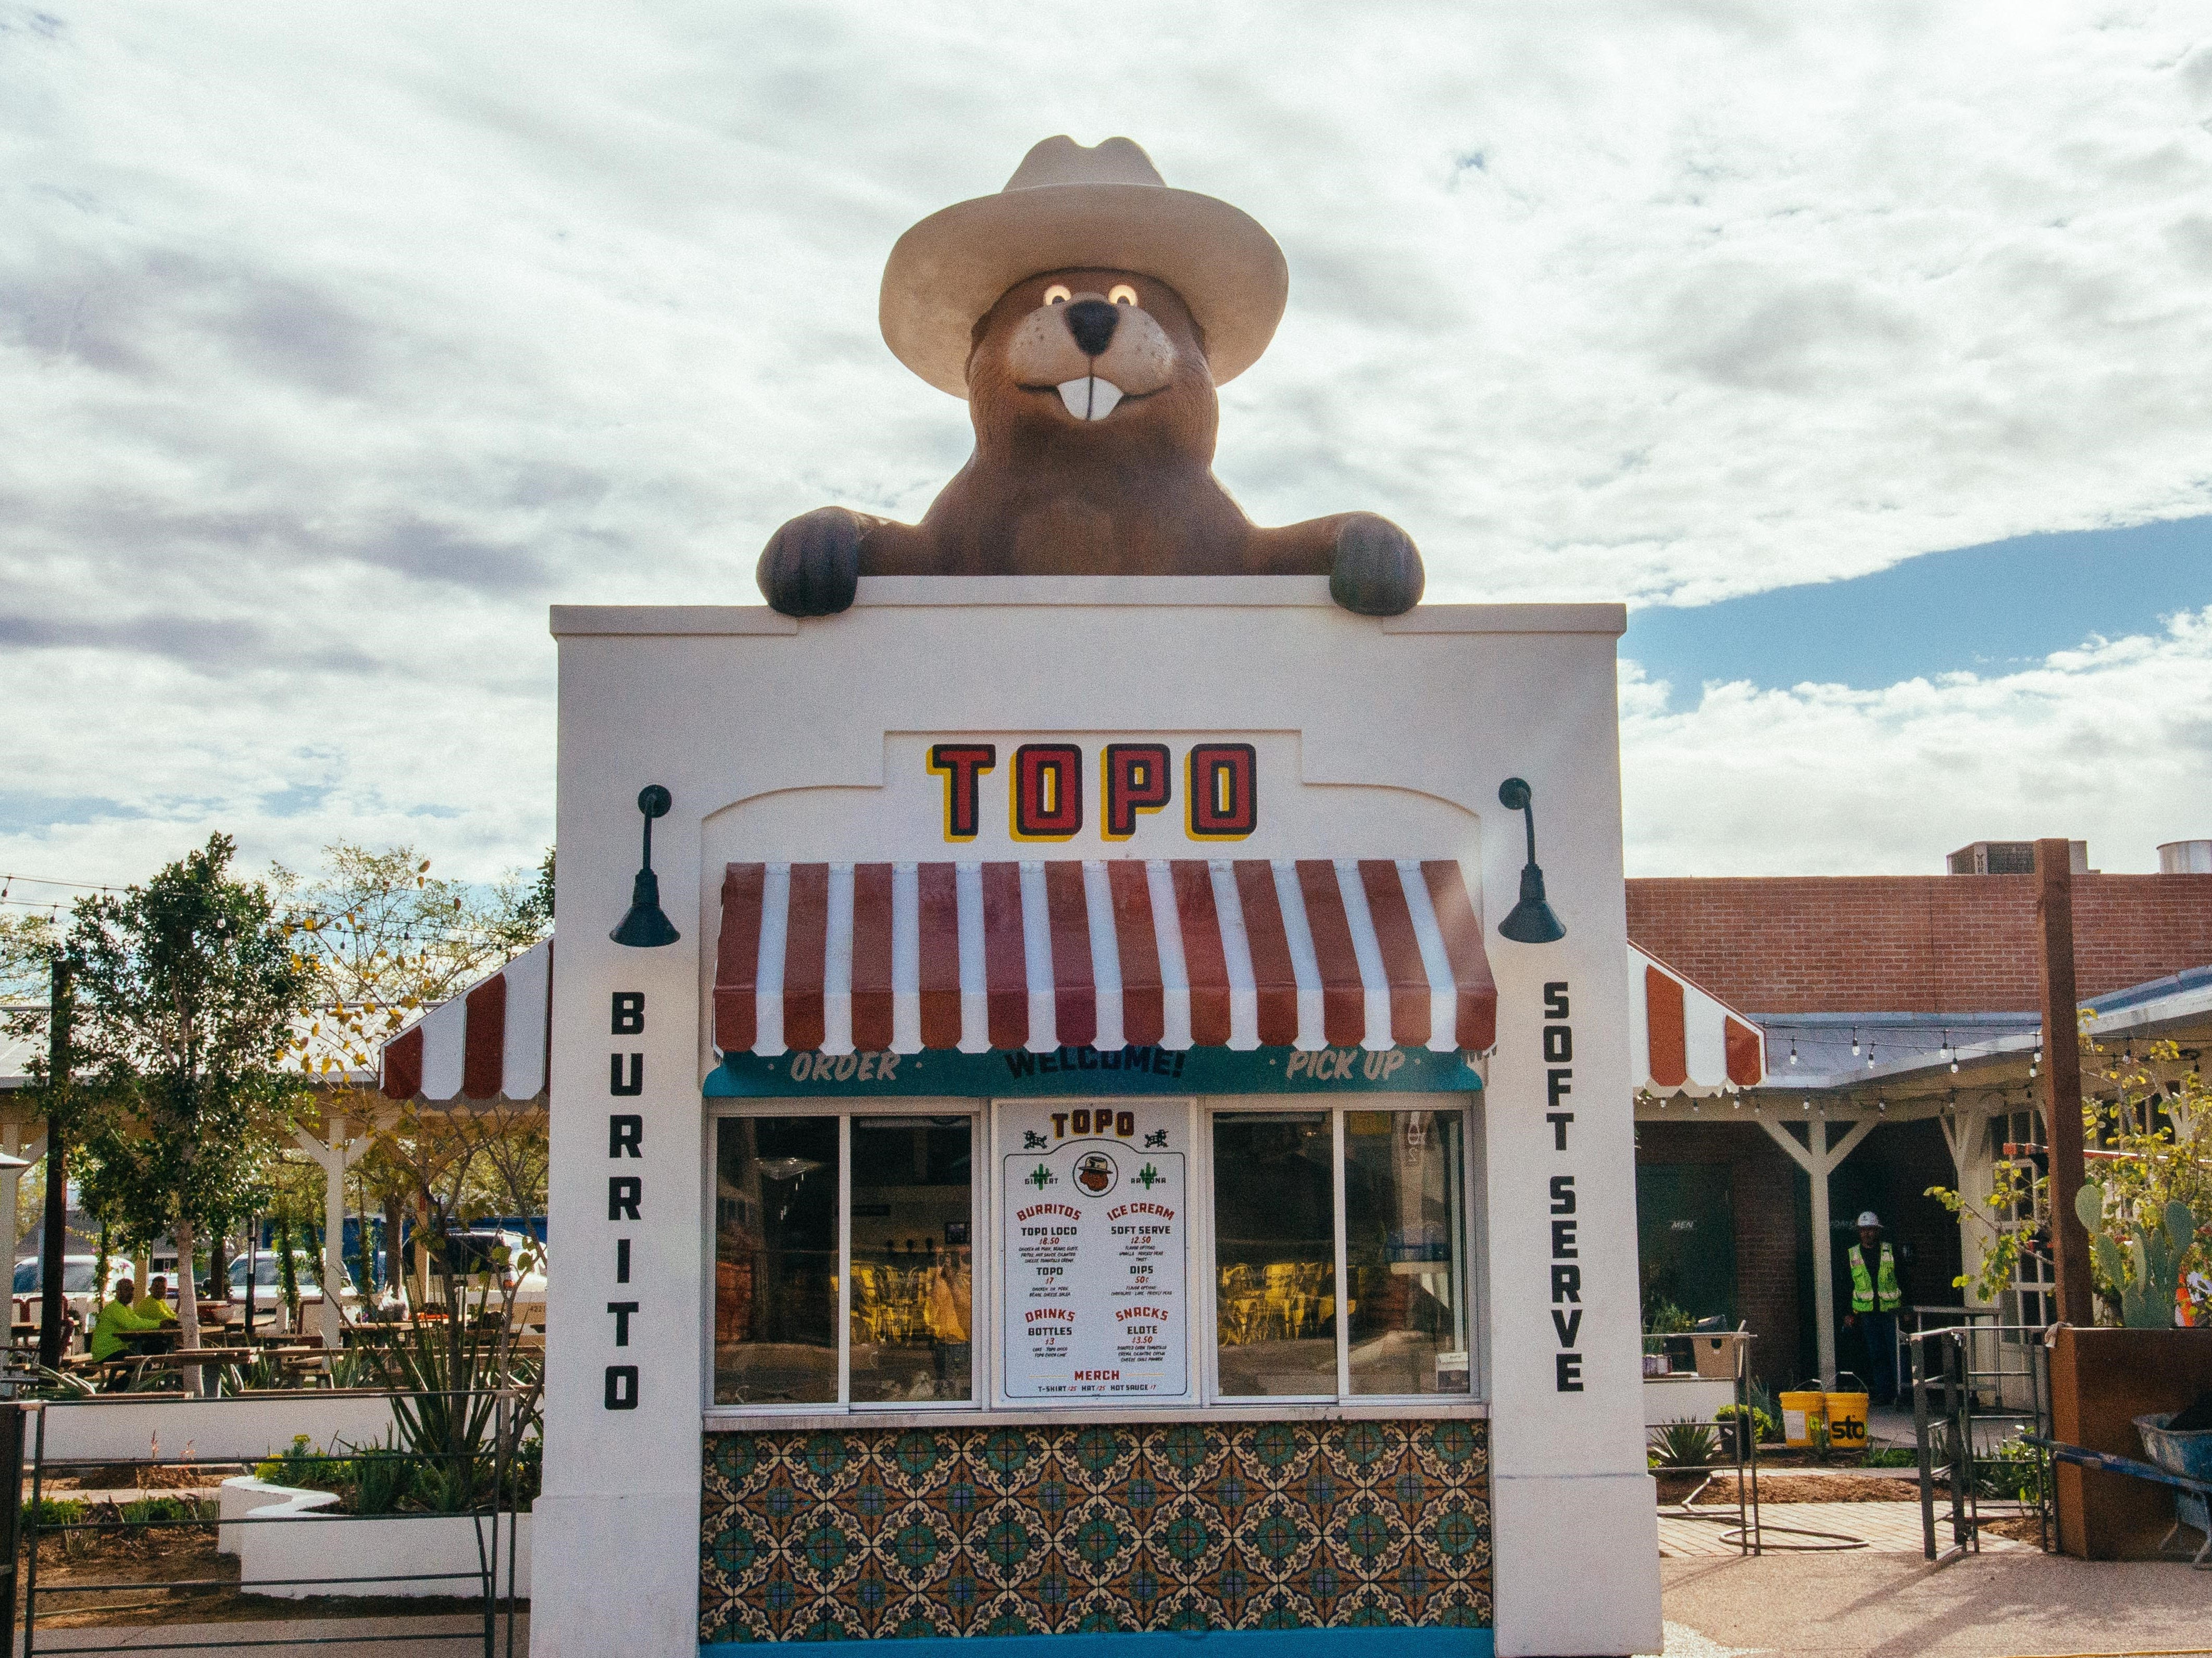 Topo, a food stand serving burritos and soft serve, is the newest food and beverage concept from restaurateur Joe Johnston.